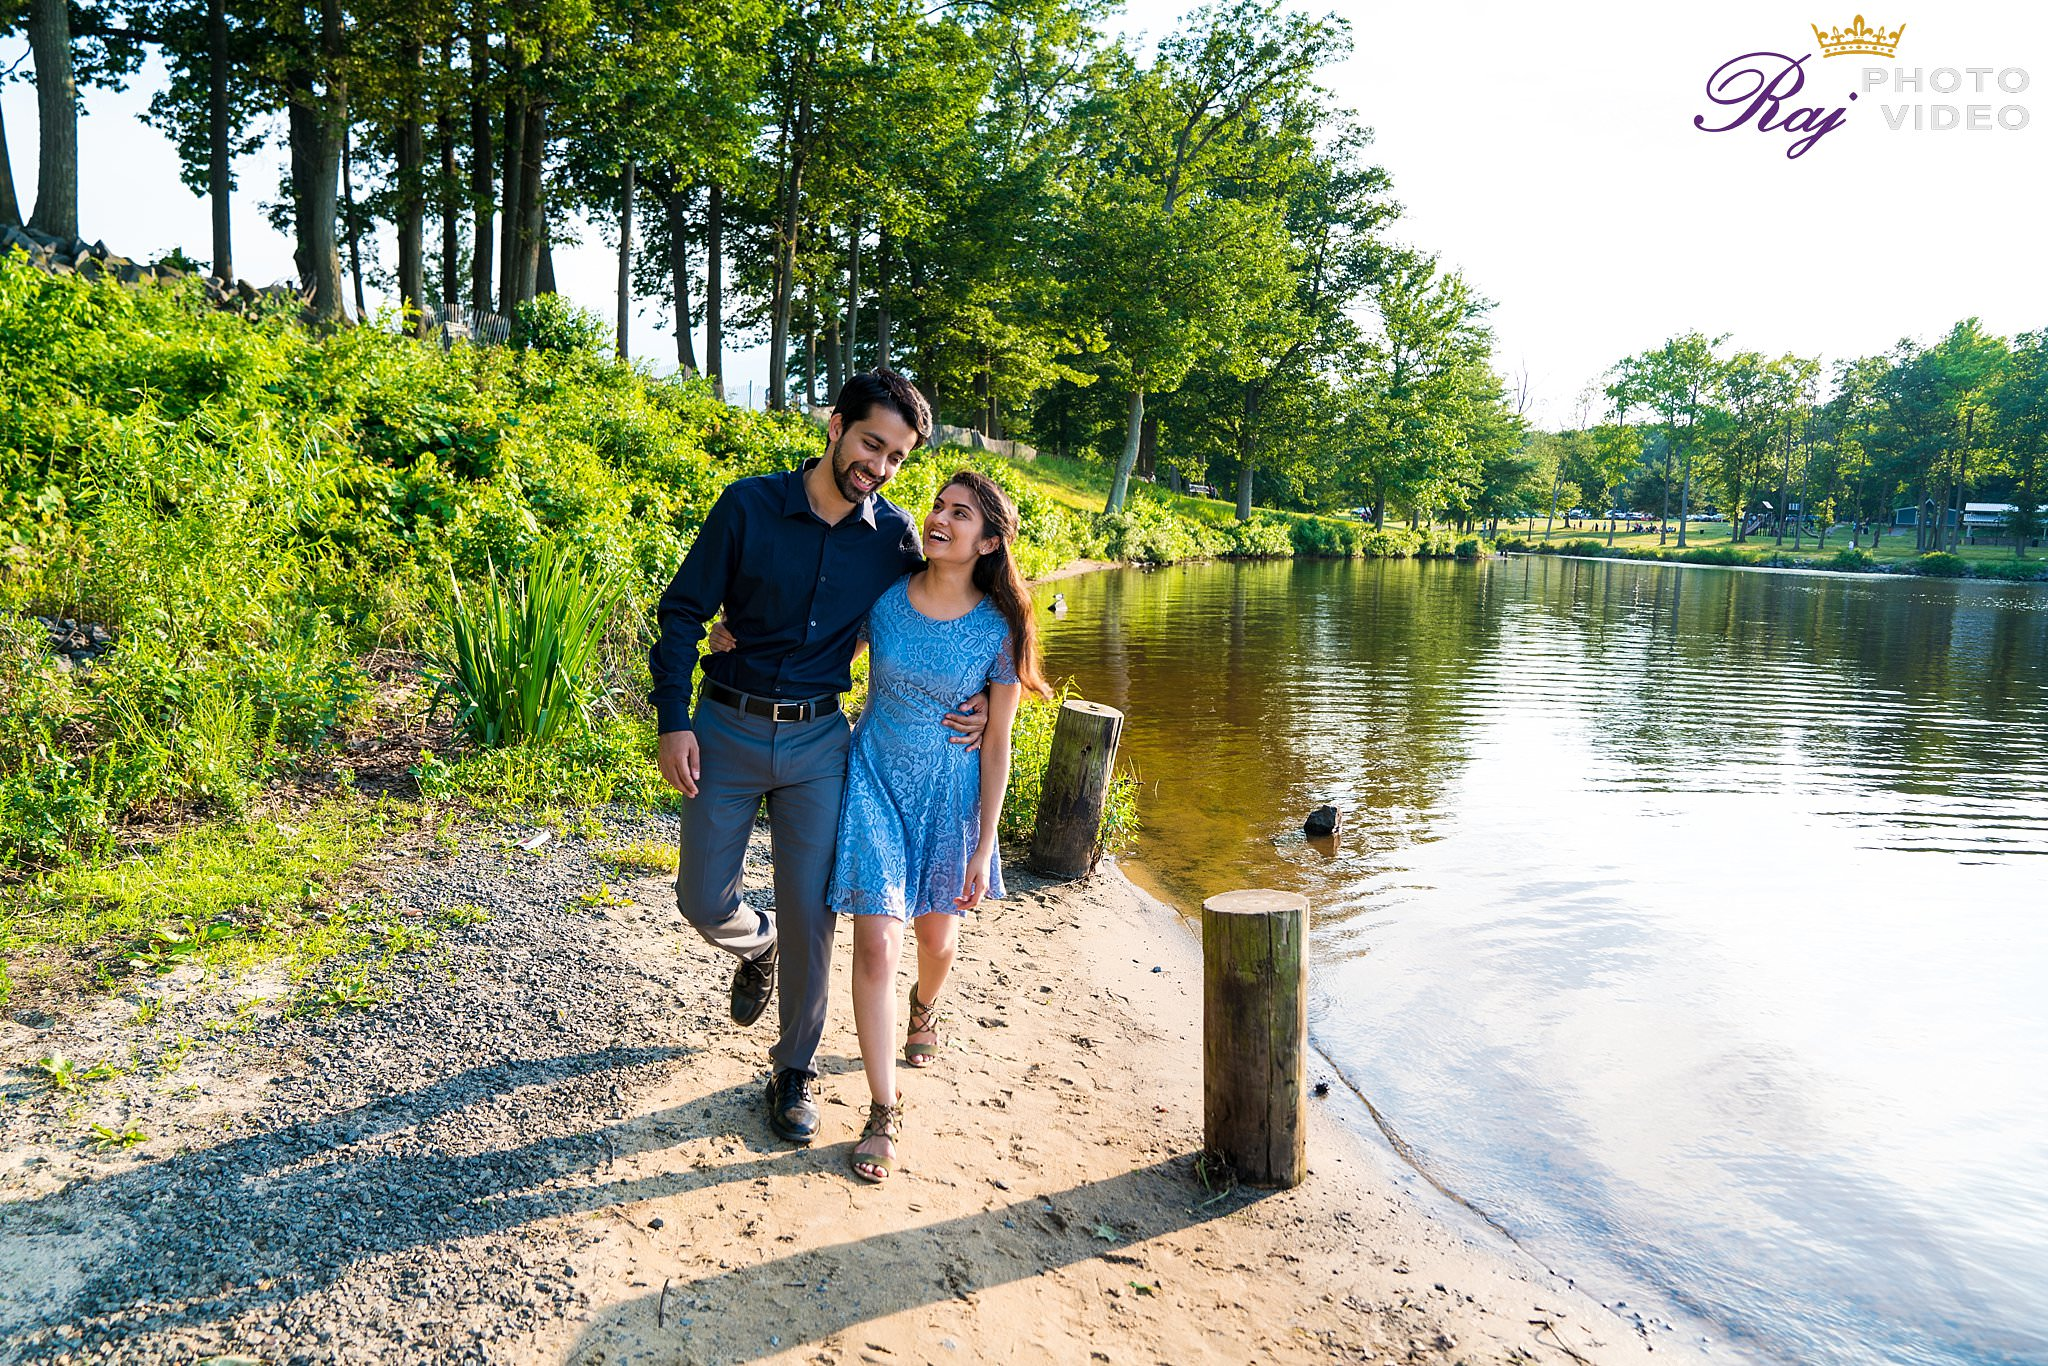 Mercer-County-Park-Engagement-Shoot-Shaili-Rahul-4_Raj_Photo_Video.jpg